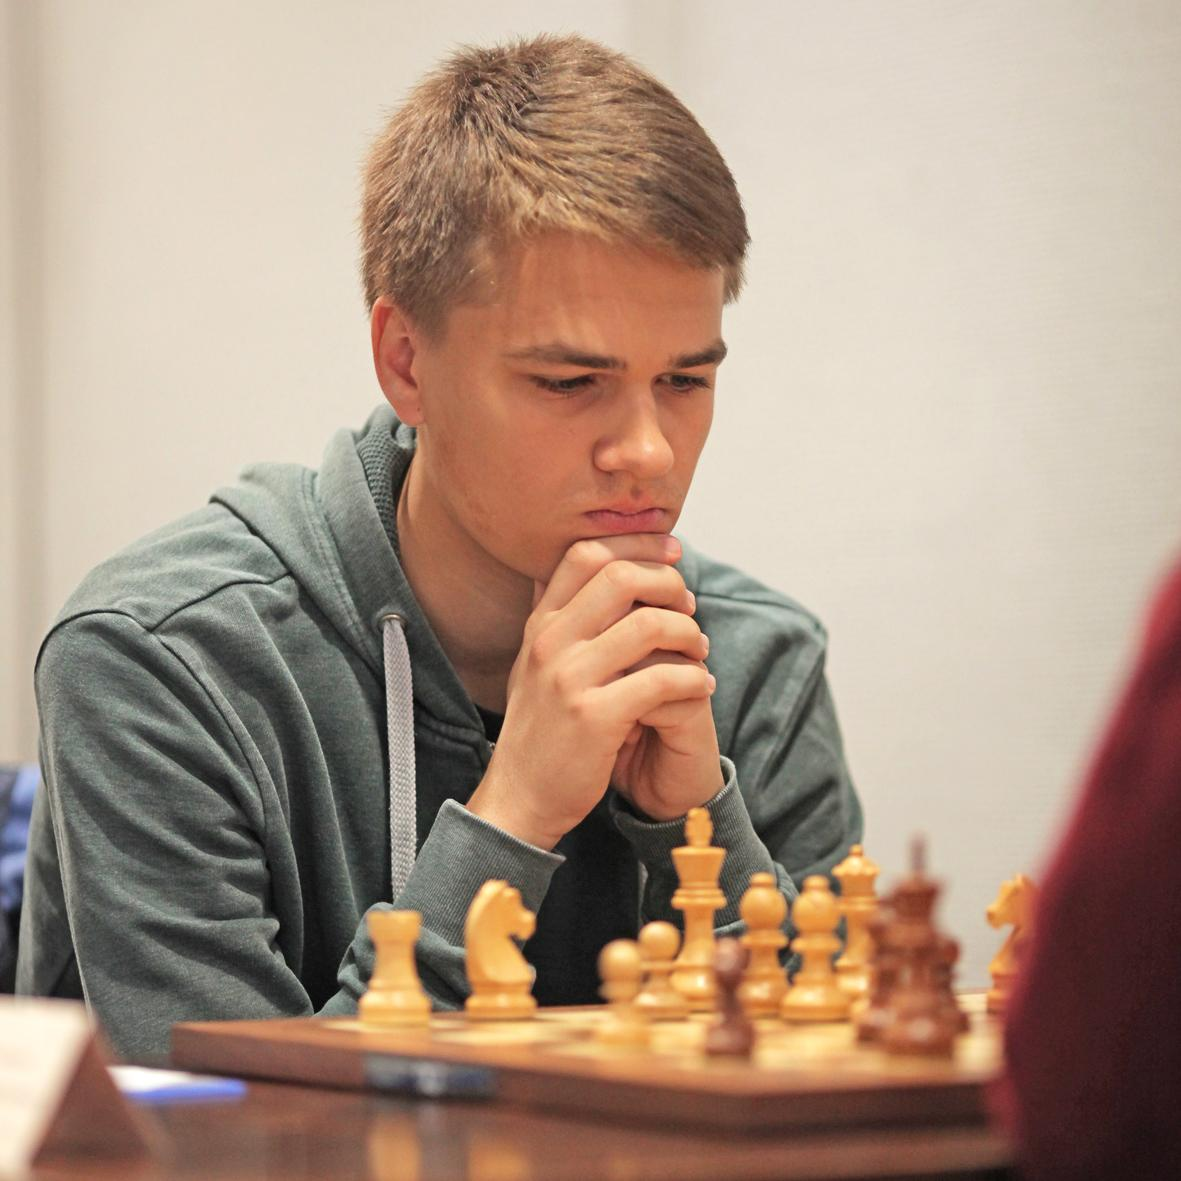 gm rasmus svane  rasmussvane  - chess profile